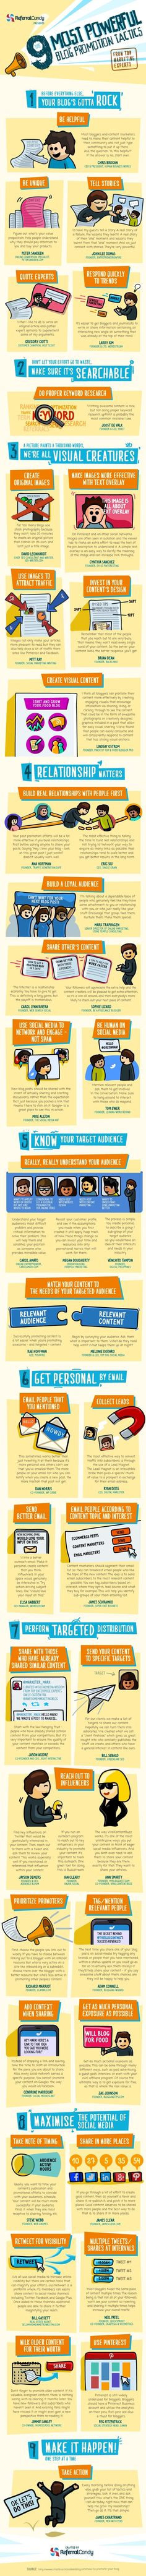 How to Promote Your Stories Effectively #Infographic